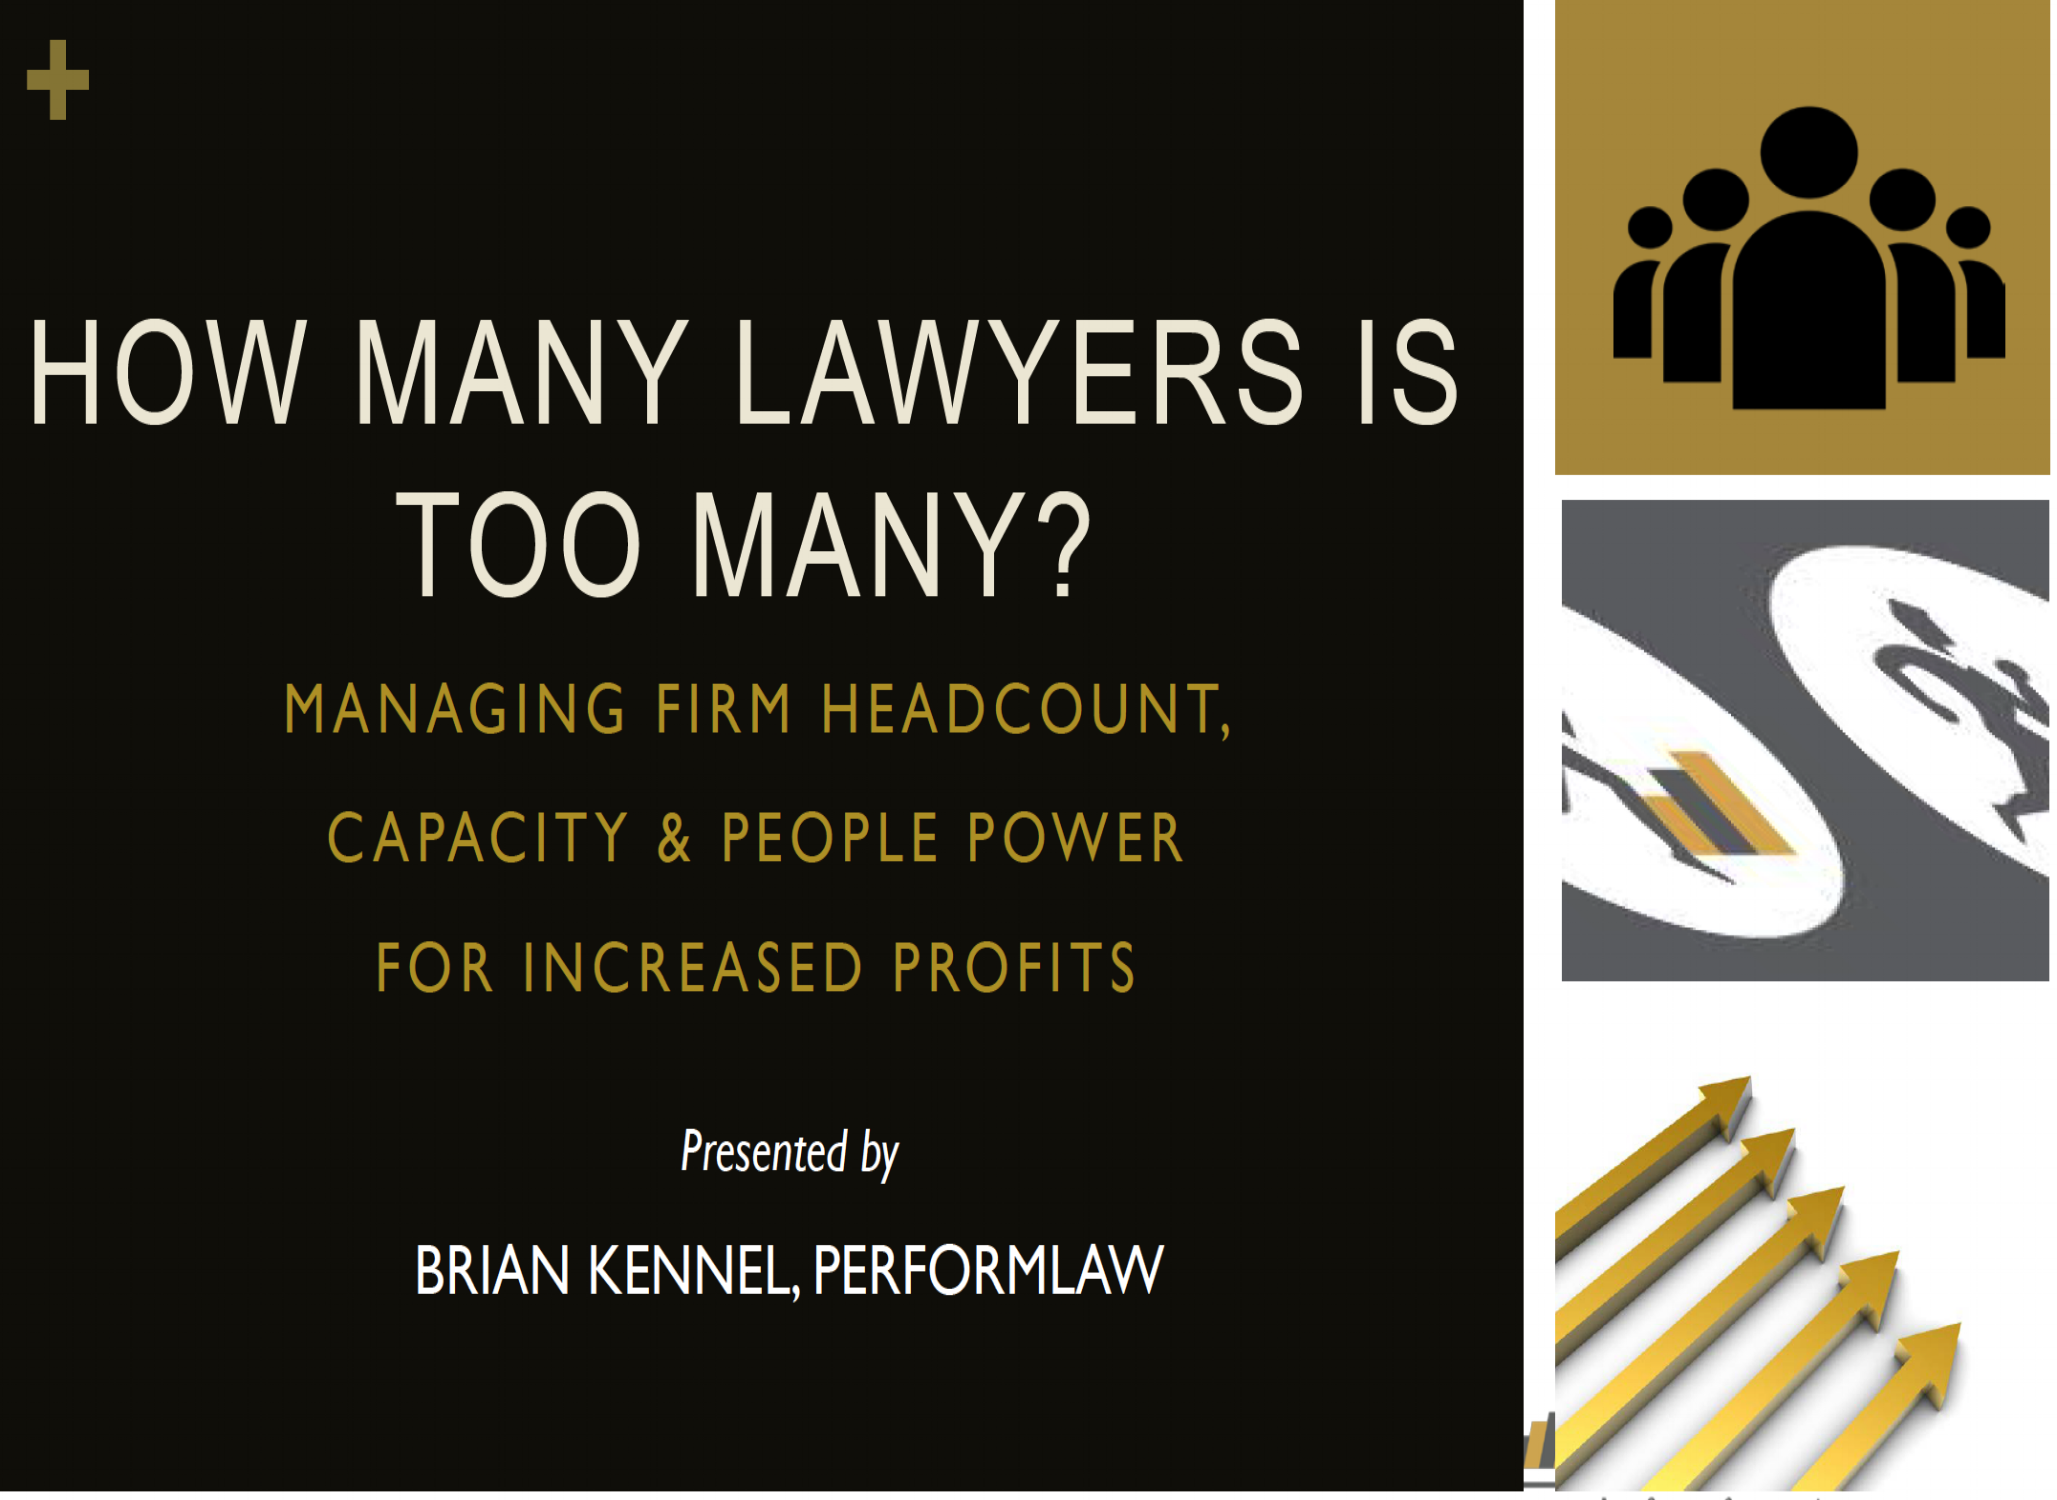 Presentation_Image_How_Many_Lawyers_Is_Too_Many-582774-edited.png